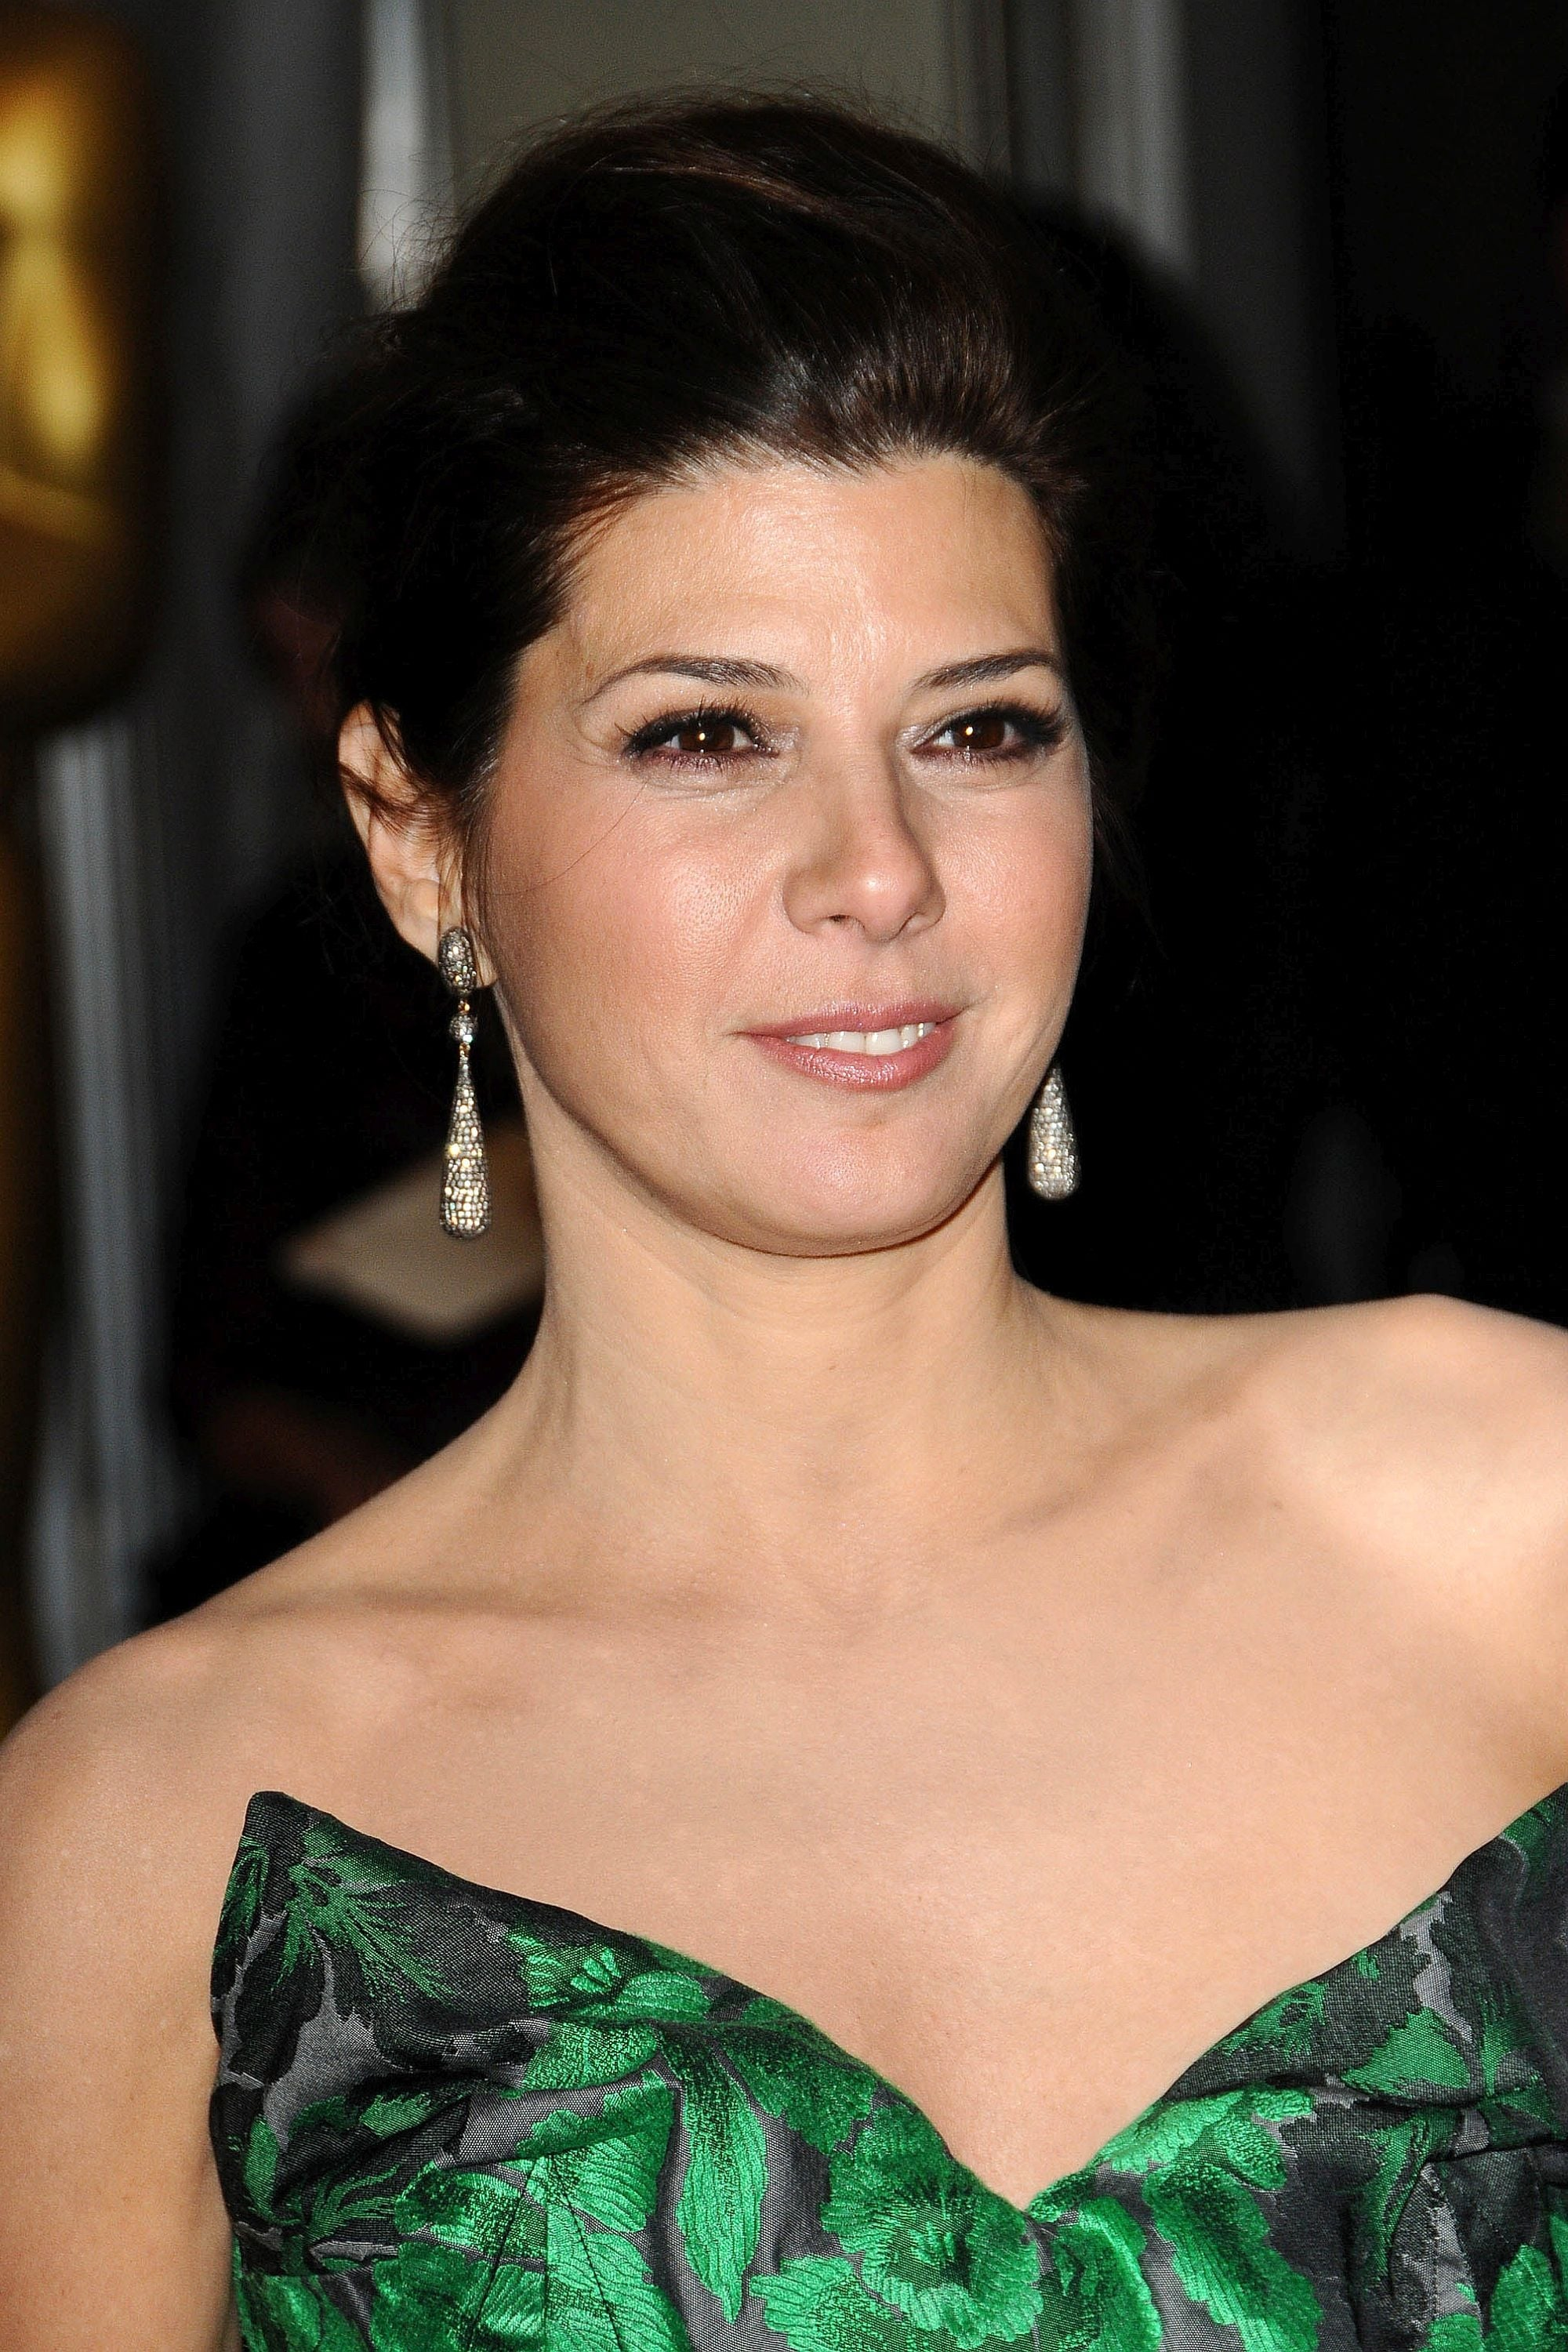 Marisa Tomei - Profile Images — The Movie Database (TMDb)